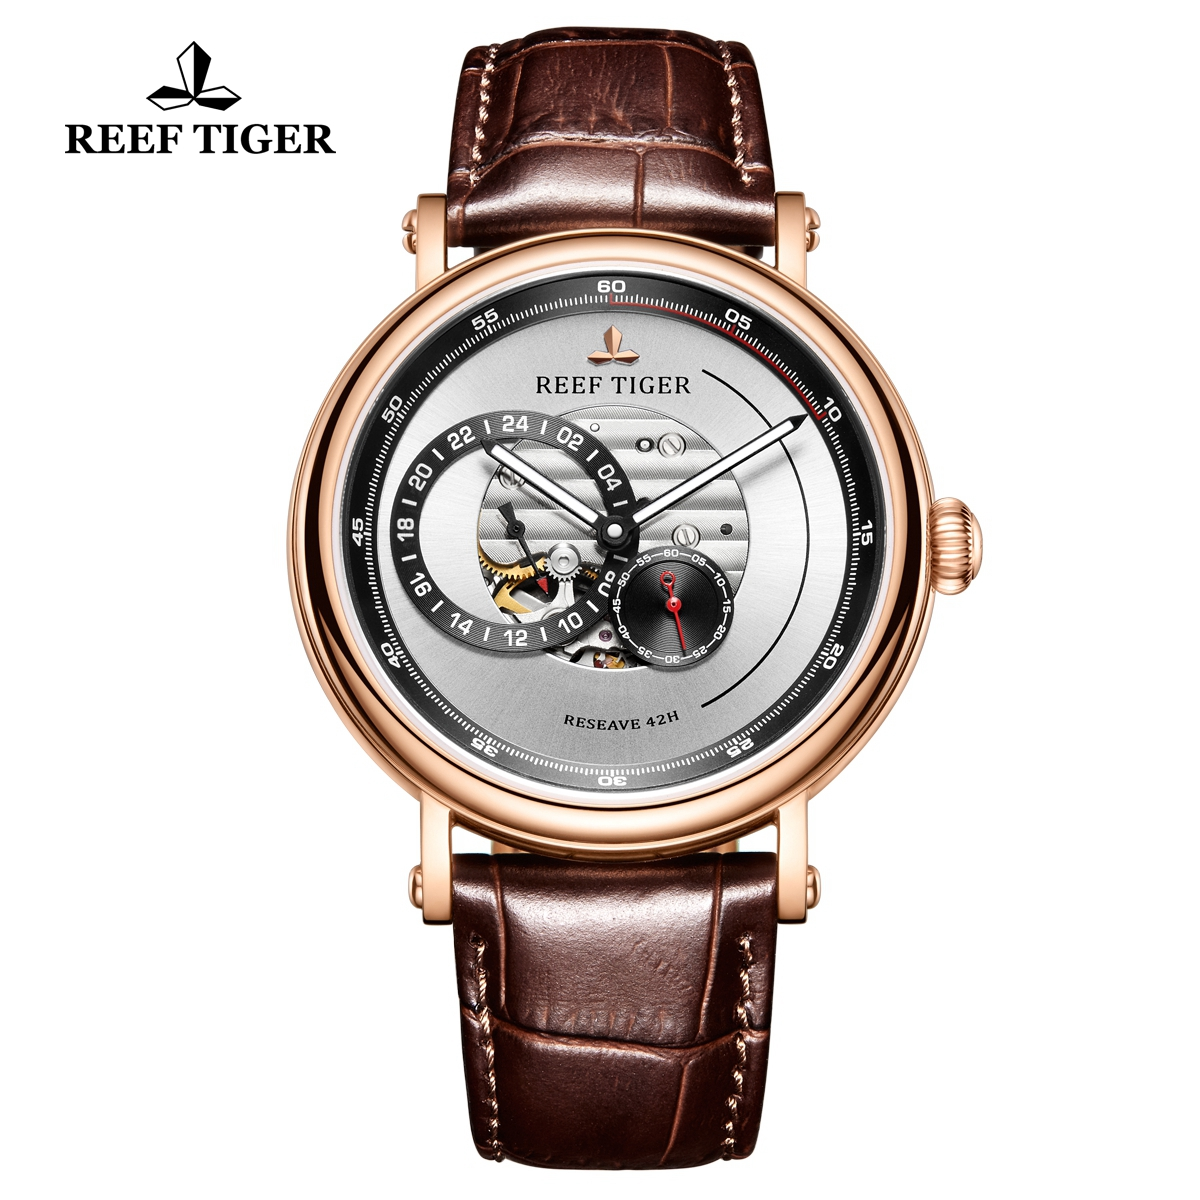 Reef Tiger Seattle Reserve Fashion Rose Gold White Dial Leather Strap Automatic Watch RGA1617-PWS